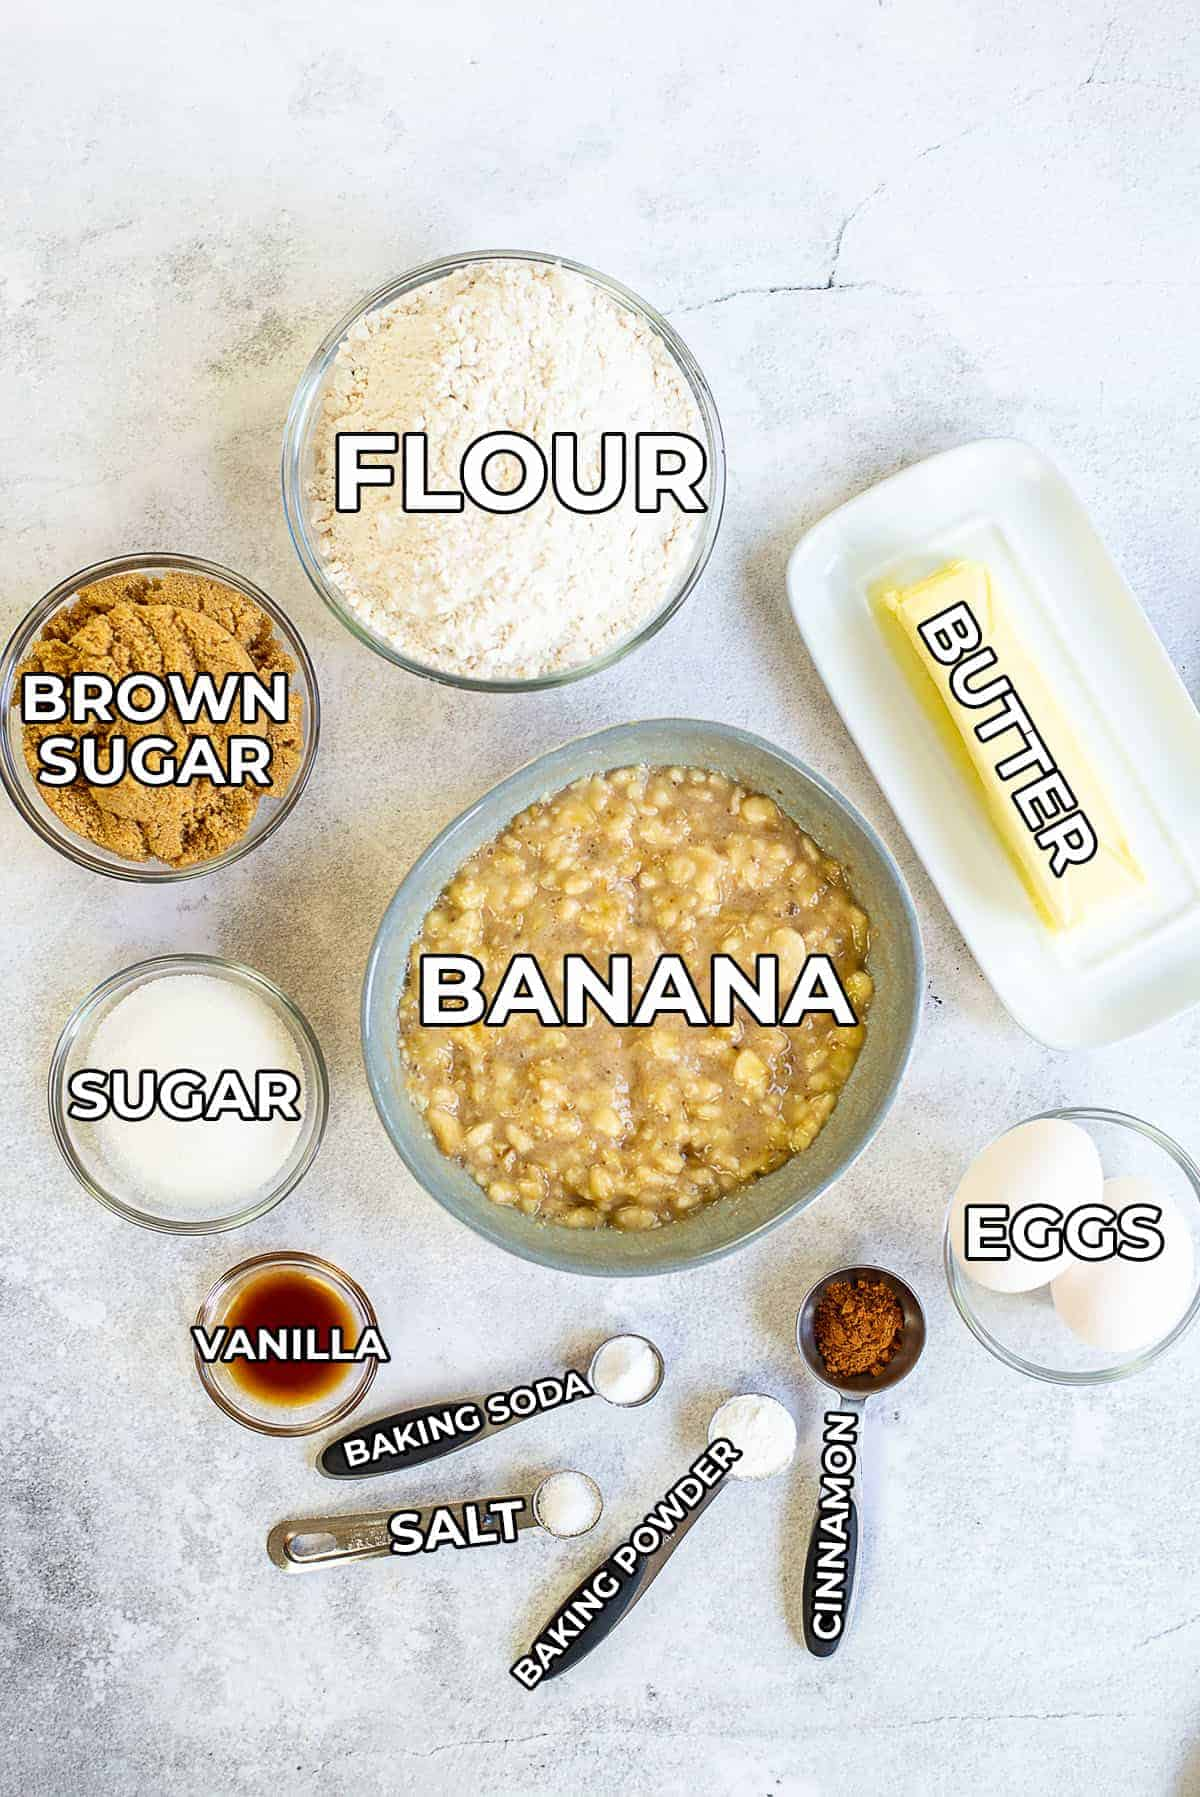 classic banana bread ingredients with labels.